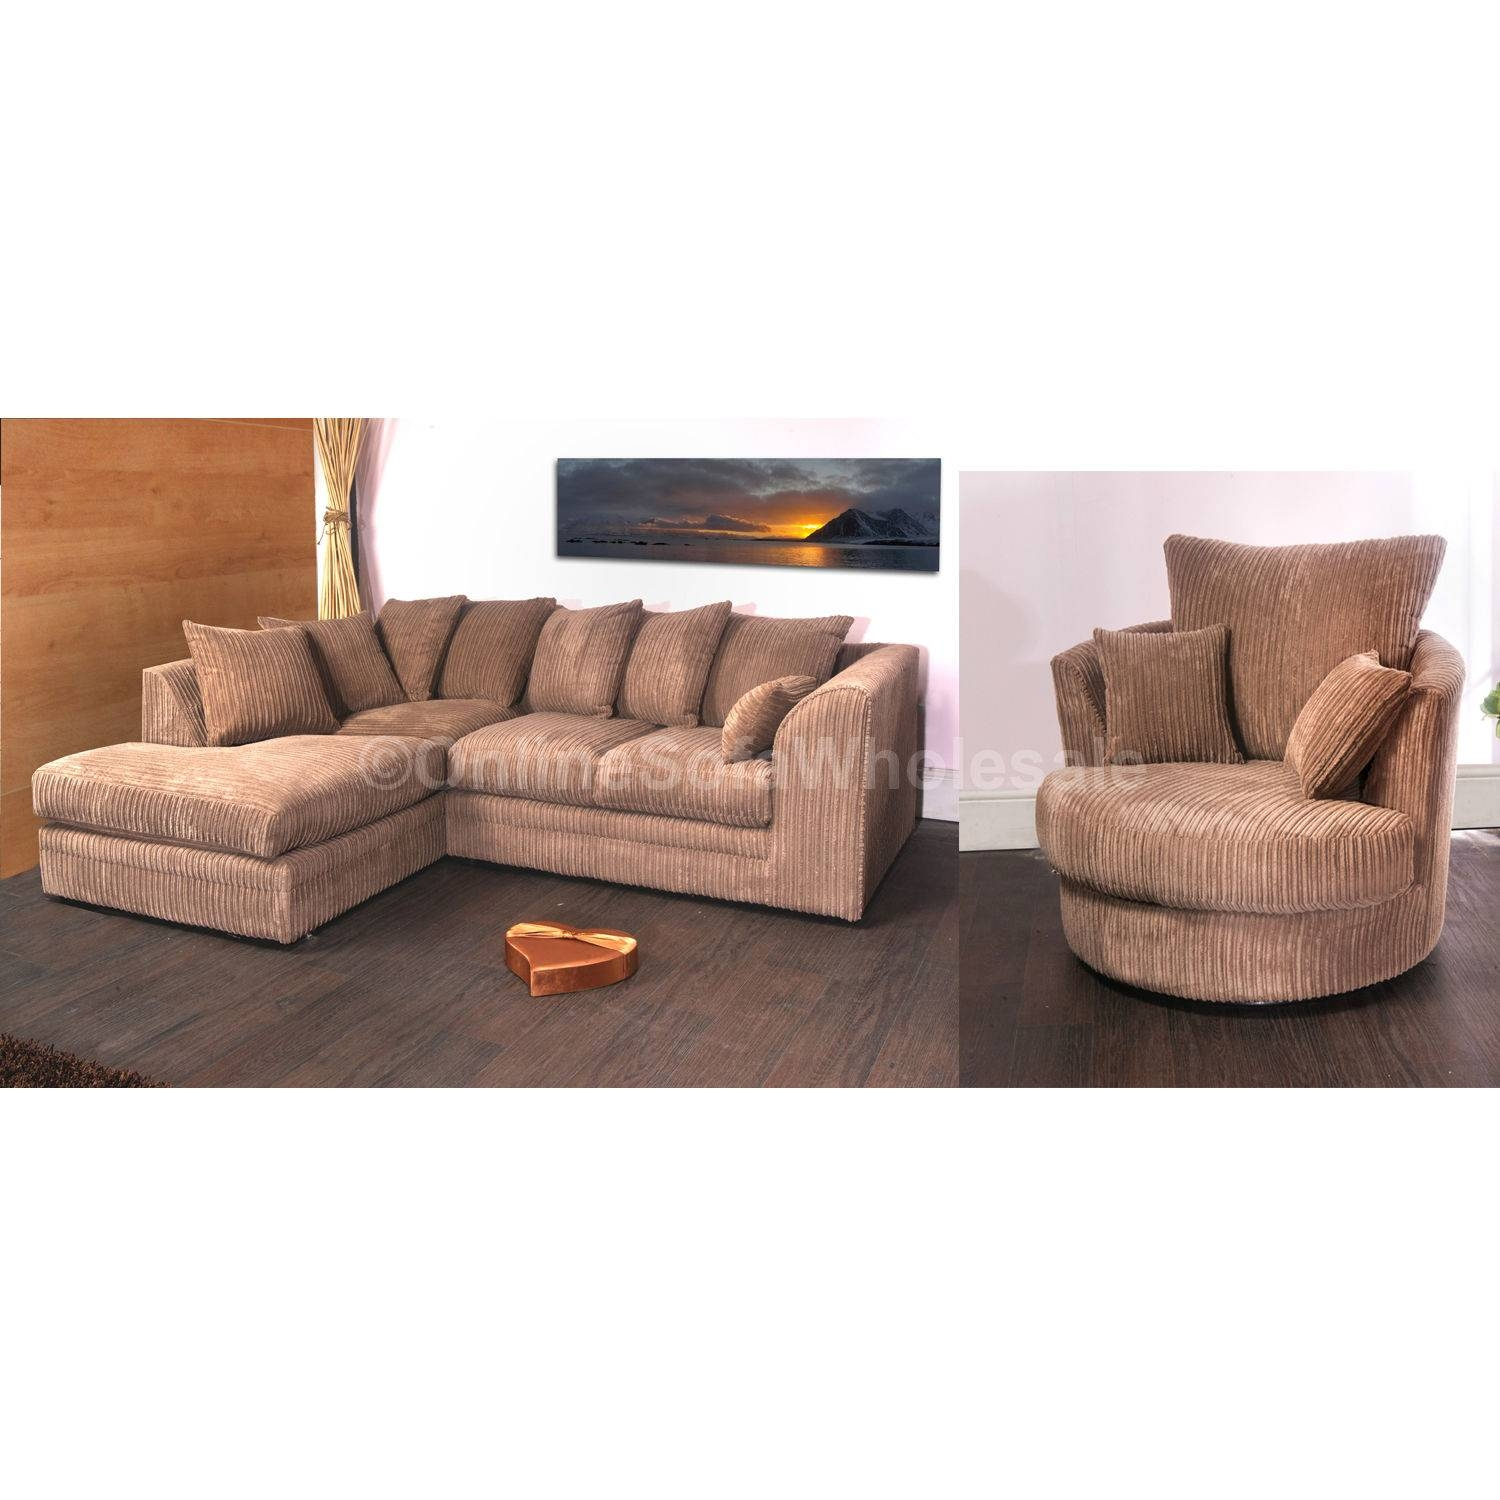 Cord Corner Sofa And Swivel Chair | Get Furnitures For Home with Corner Sofa And Swivel Chairs (Image 7 of 30)